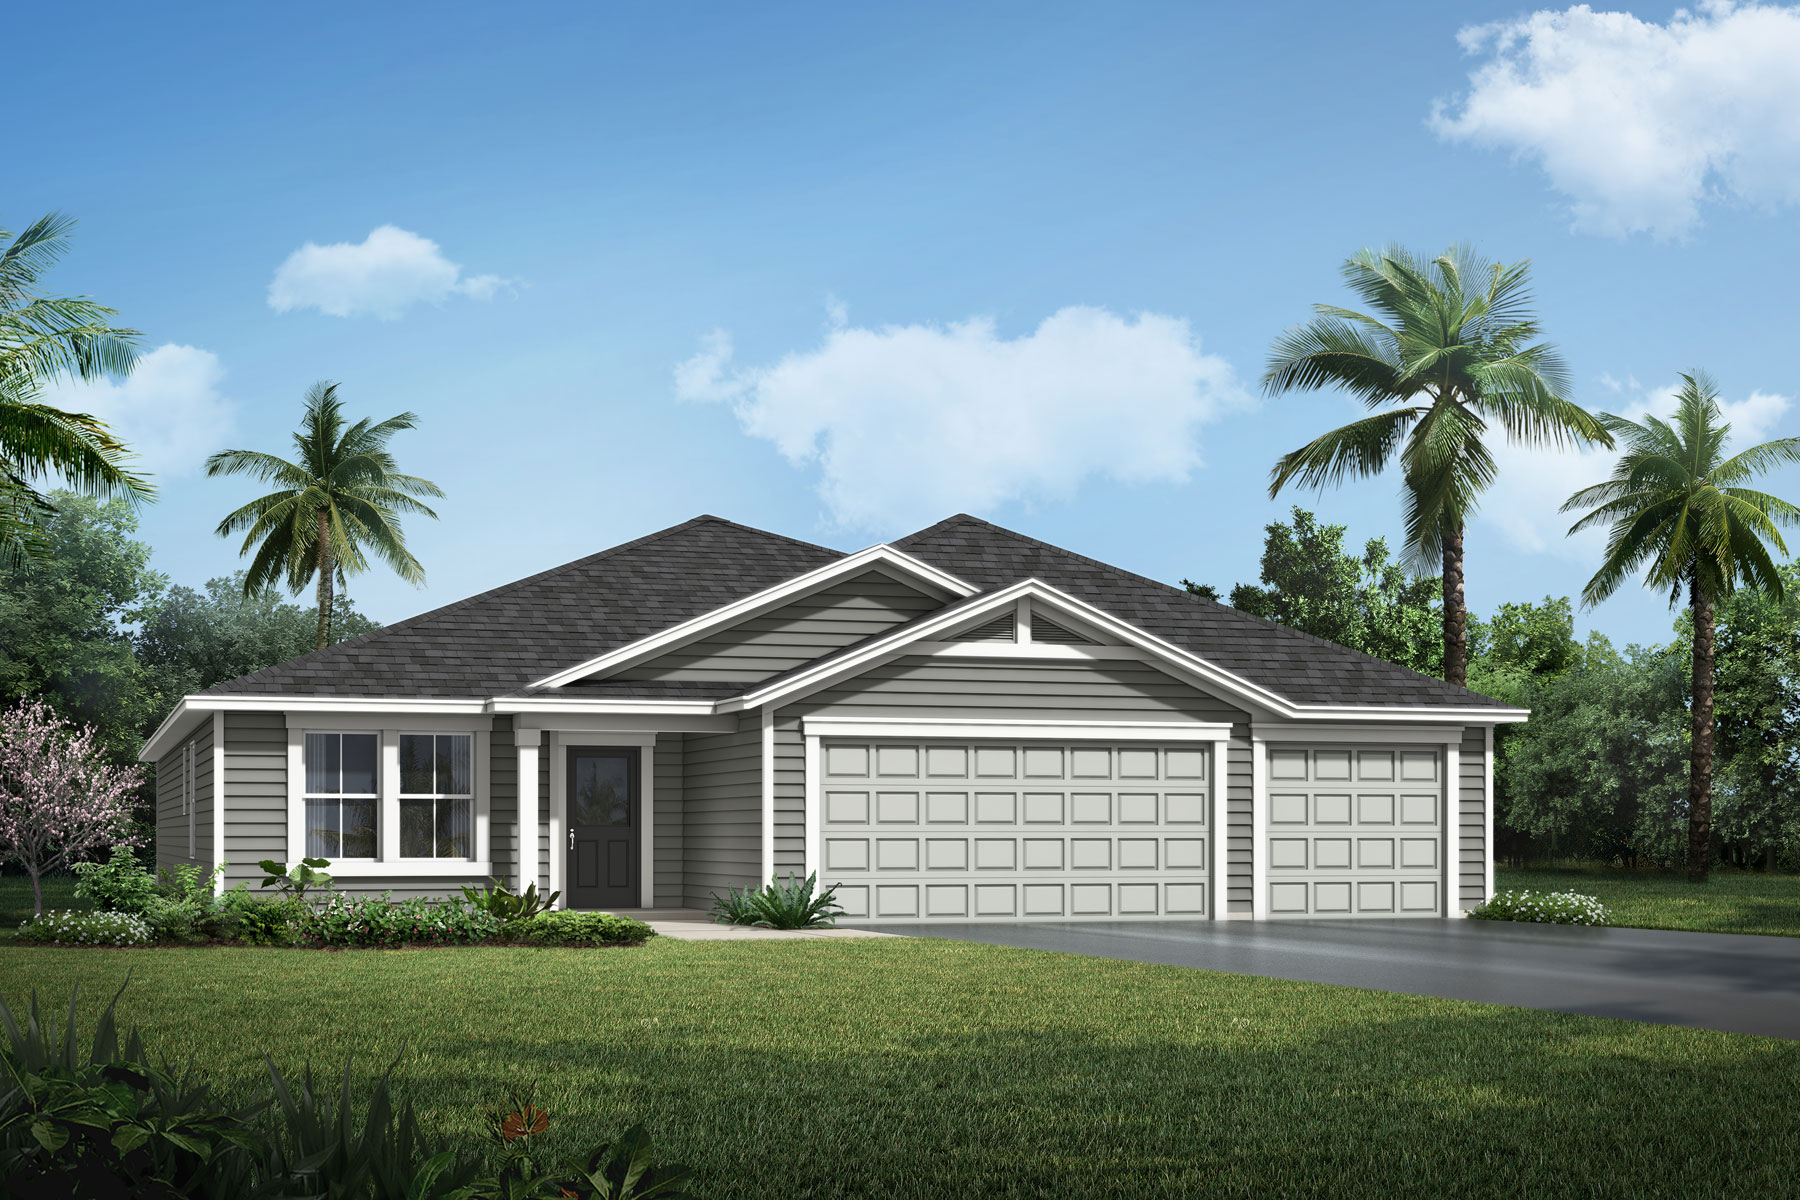 Braden Plan Elevation Front at RiverTown - Haven in St. Johns Florida by Mattamy Homes